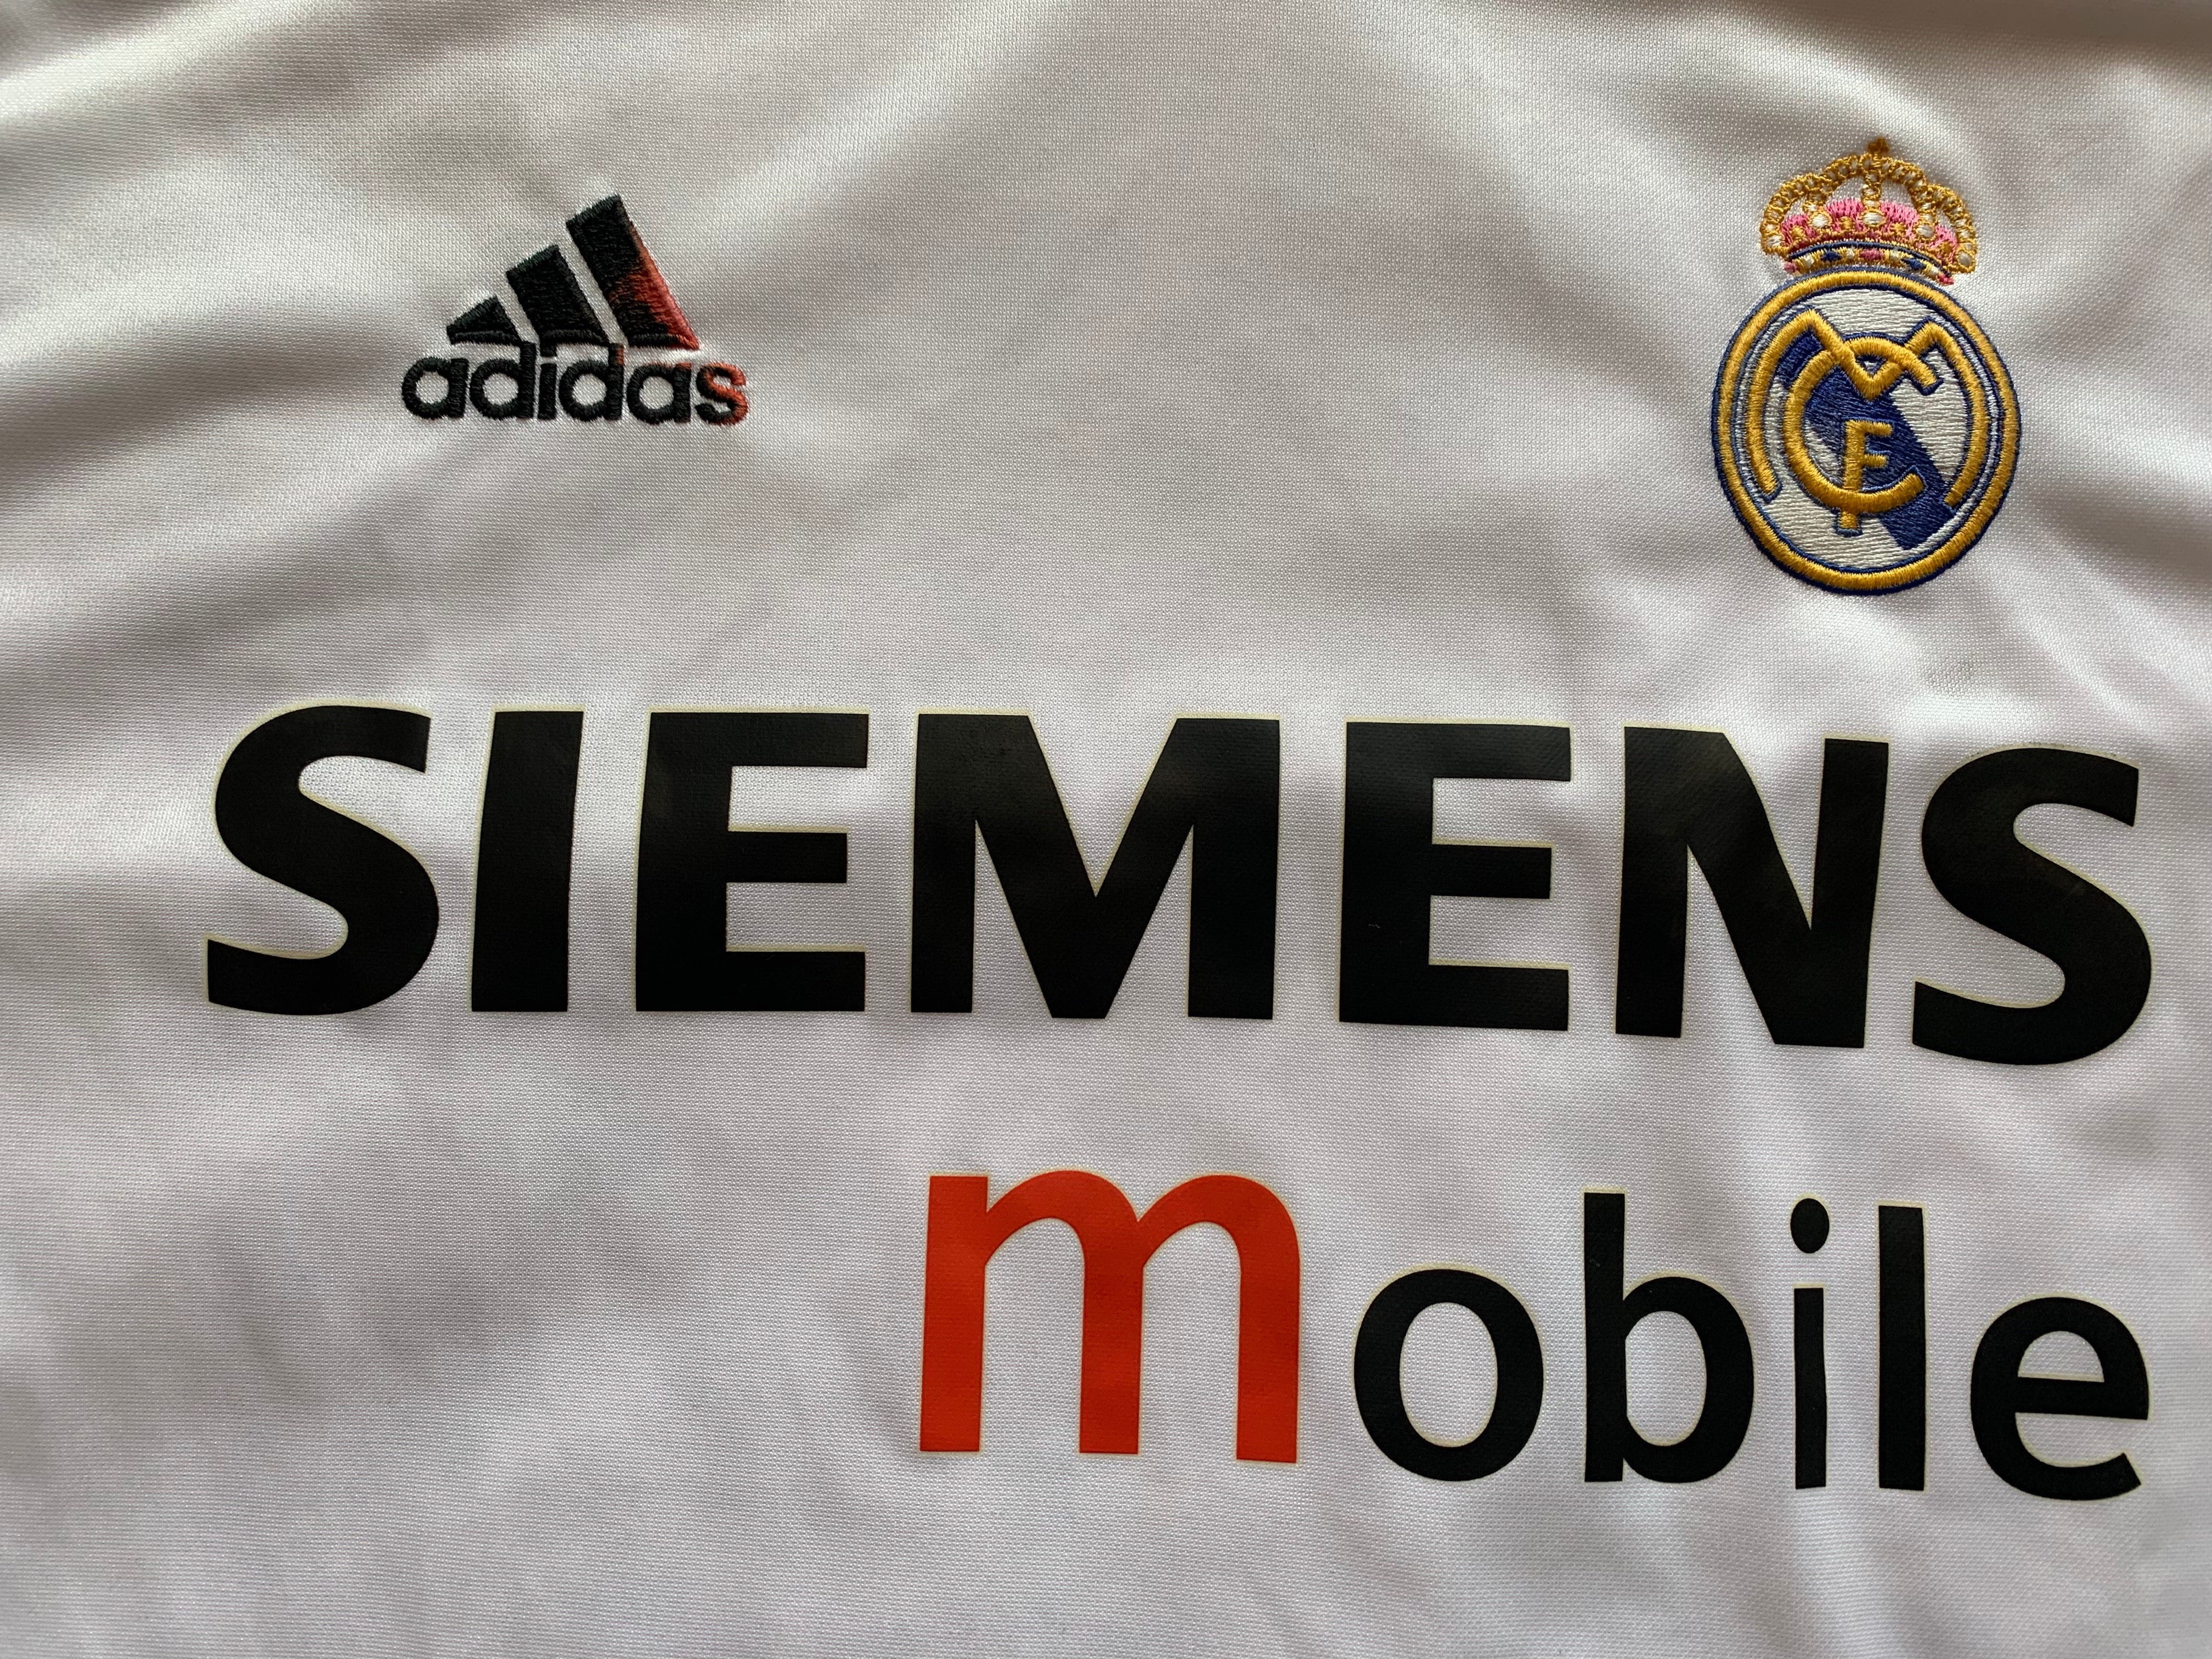 2004/05 Real Madrid Home Shirt (L) 7/10